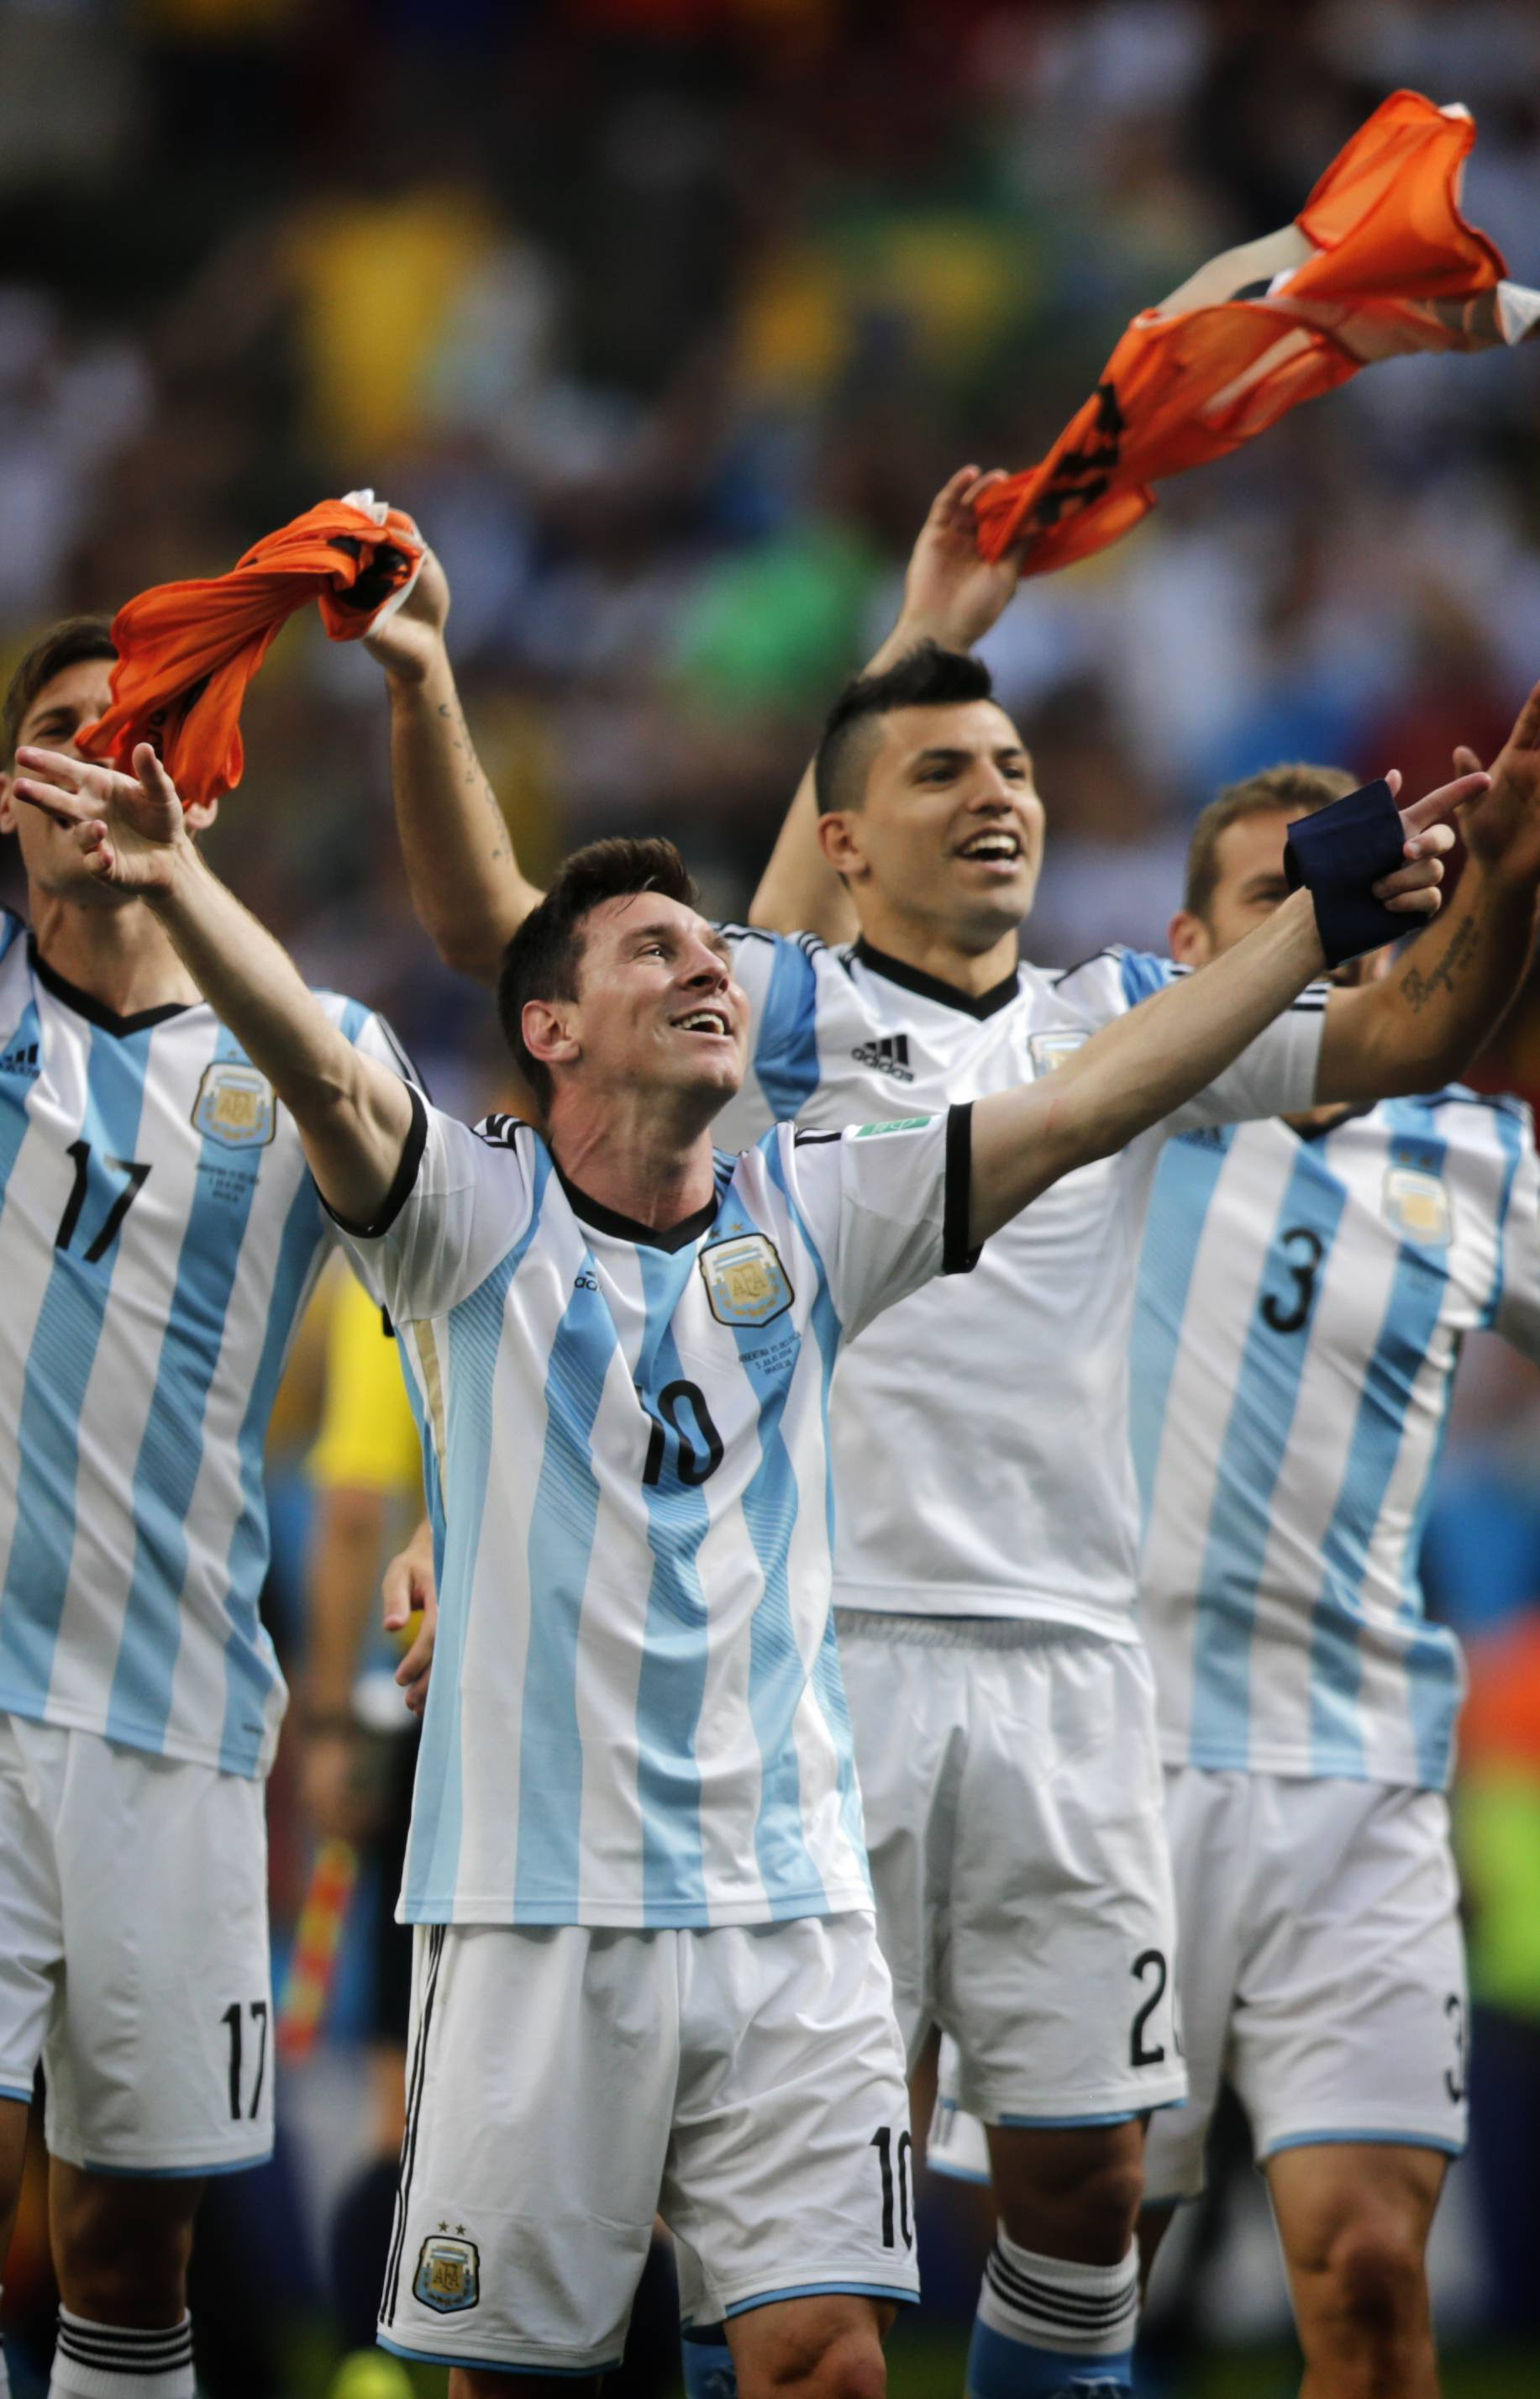 Argentina's Lionel Messi and teammates celebrate at the end of their World Cup quarterfinal soccer match against Belgium Saturday at the Estadio Nacional in Brasilia, Brazil.